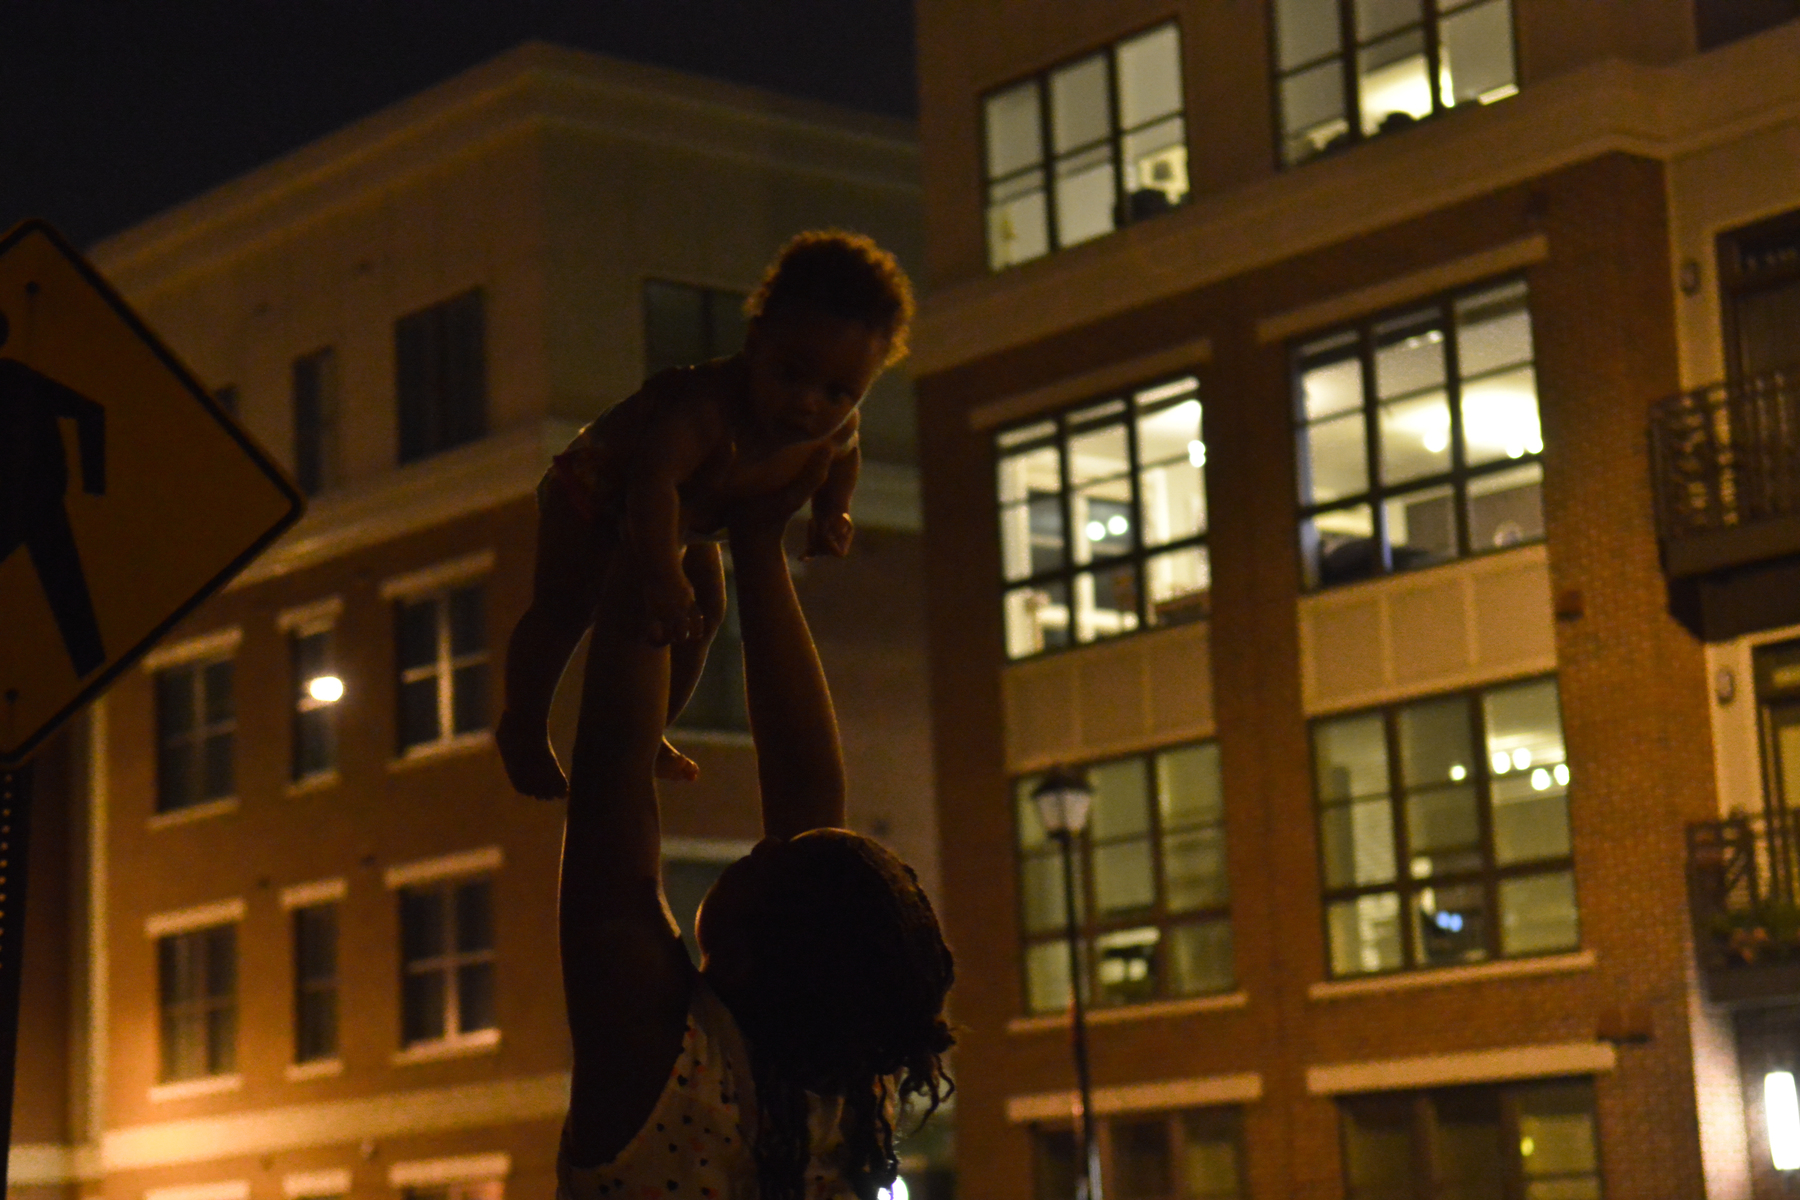 Flying baby outside of the new condos.